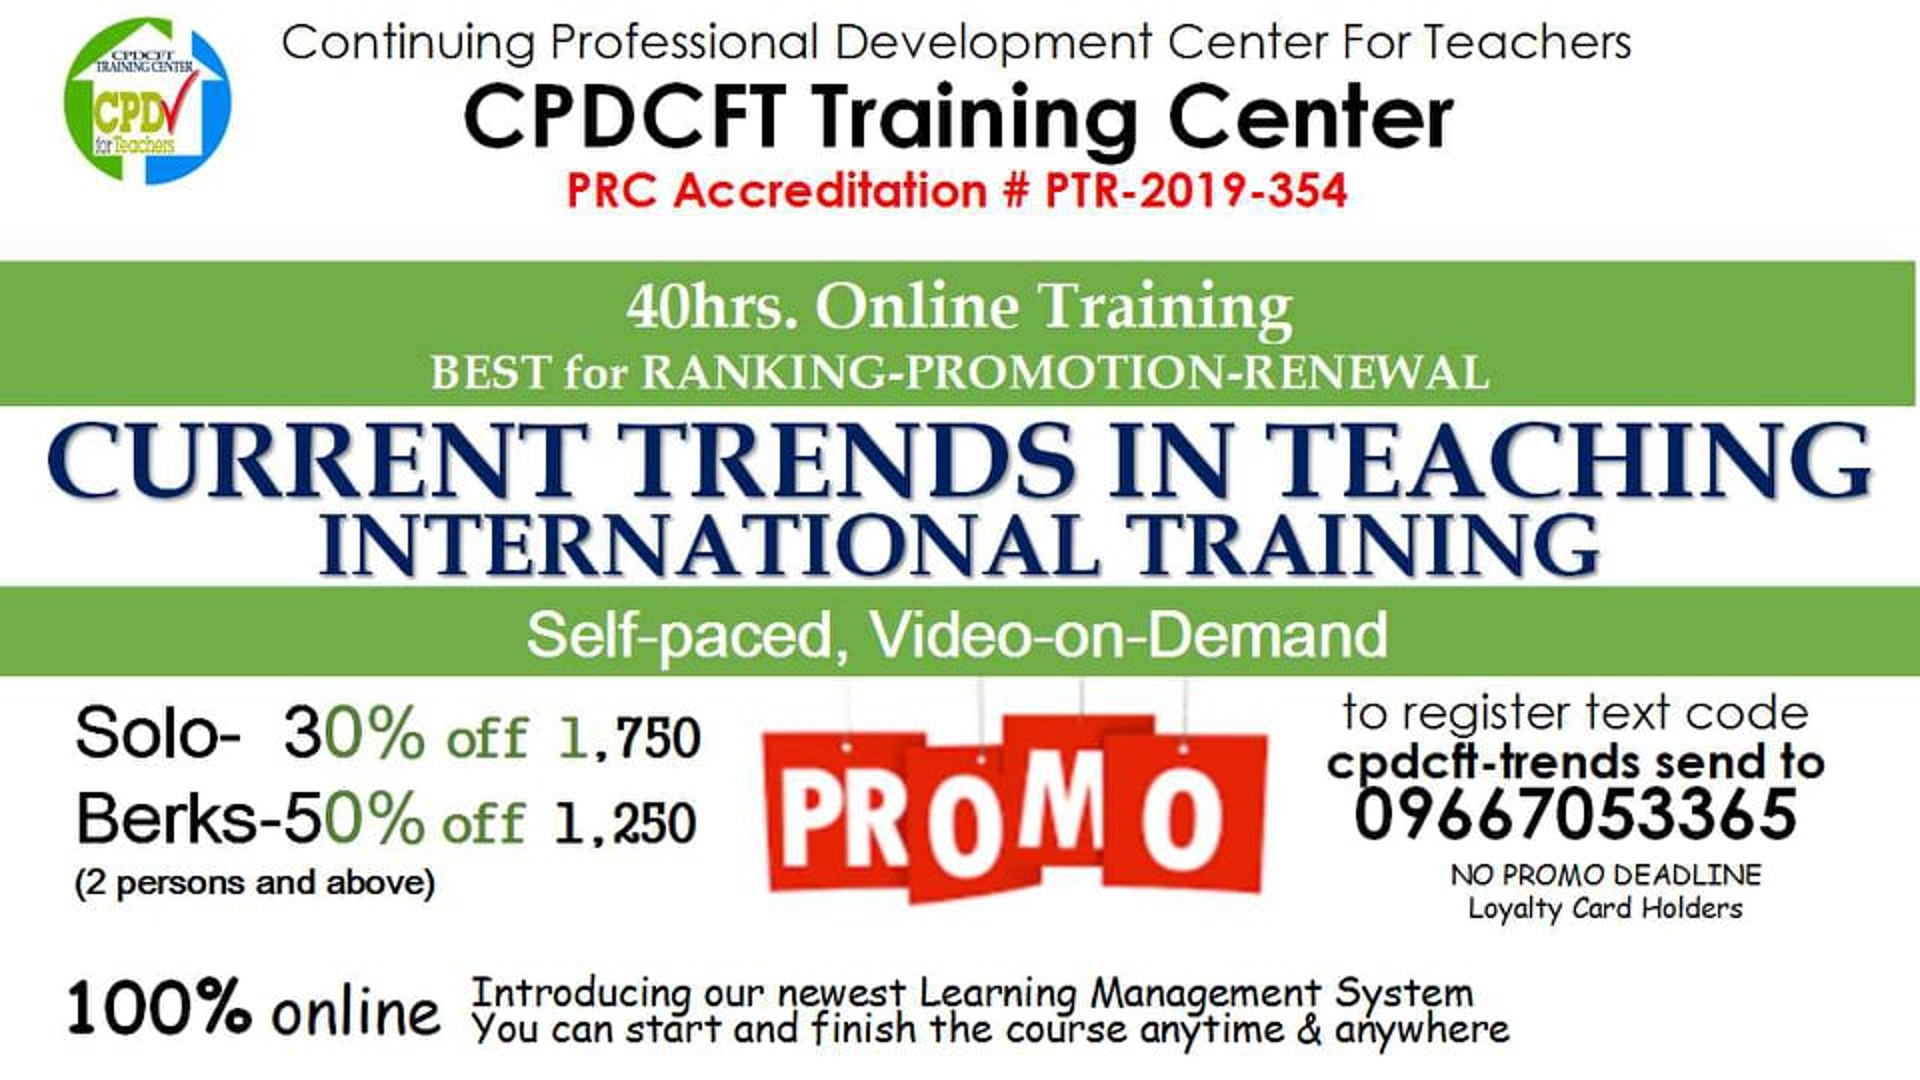 Current Trends in Teaching International Training